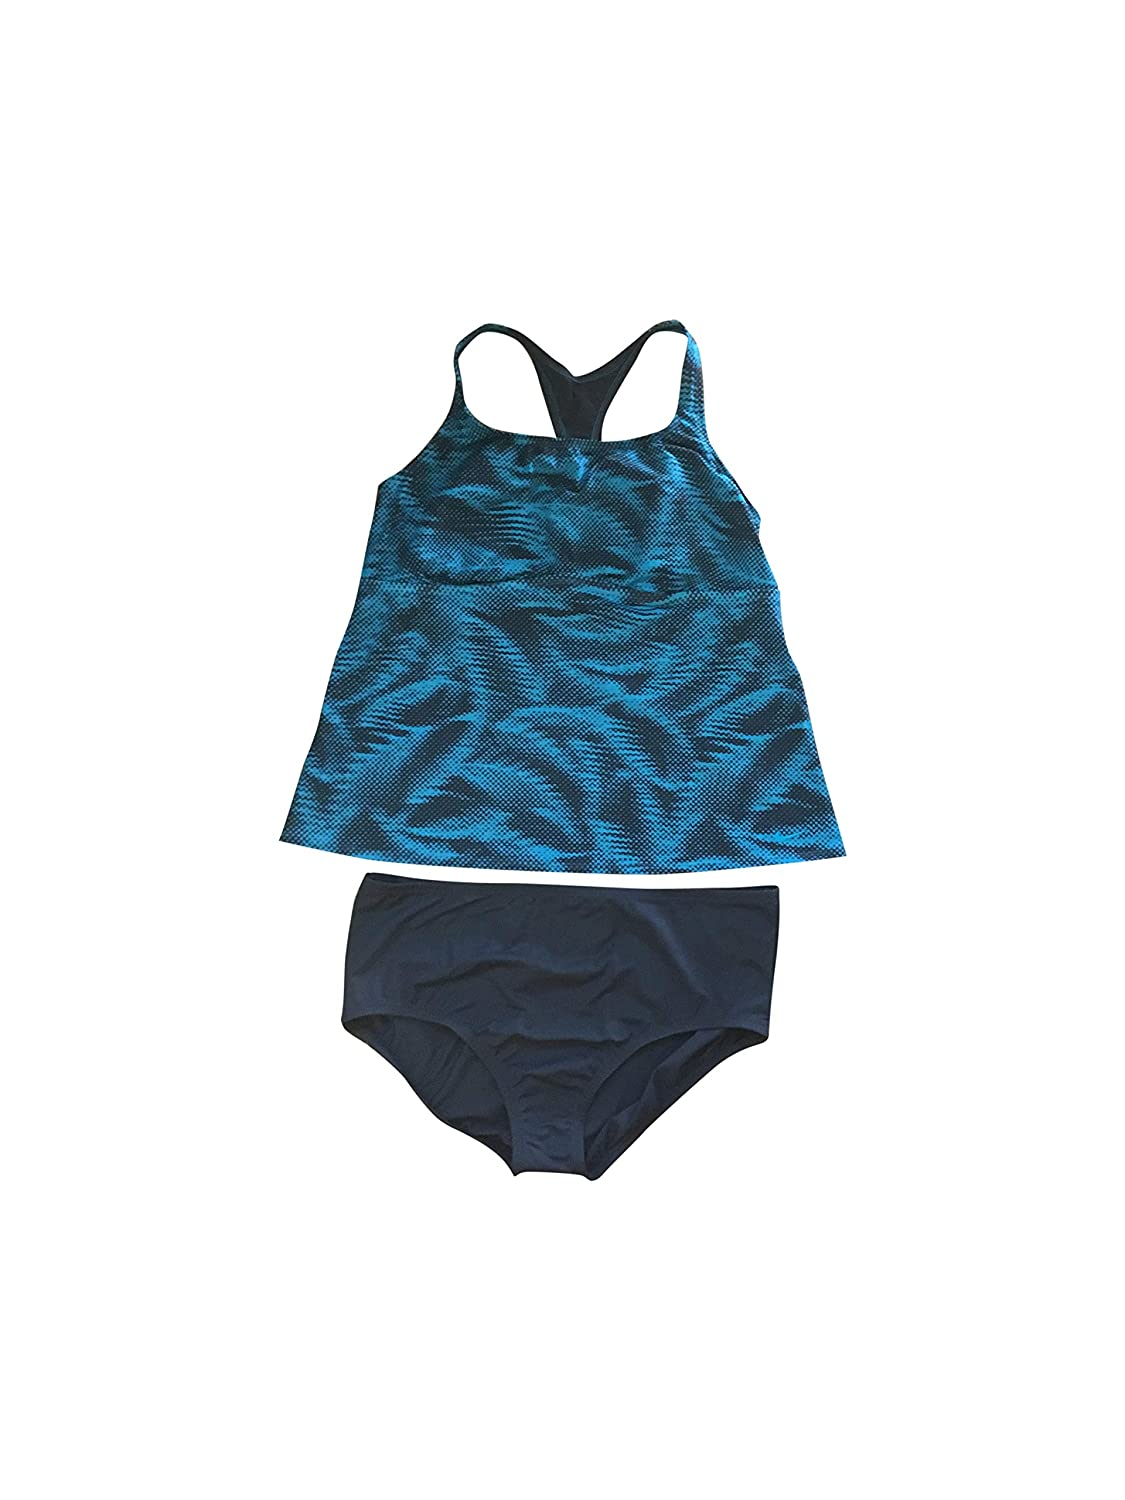 Grey Turquoise Nike Women's Tankini Athletic TwoPiece Swimsuit